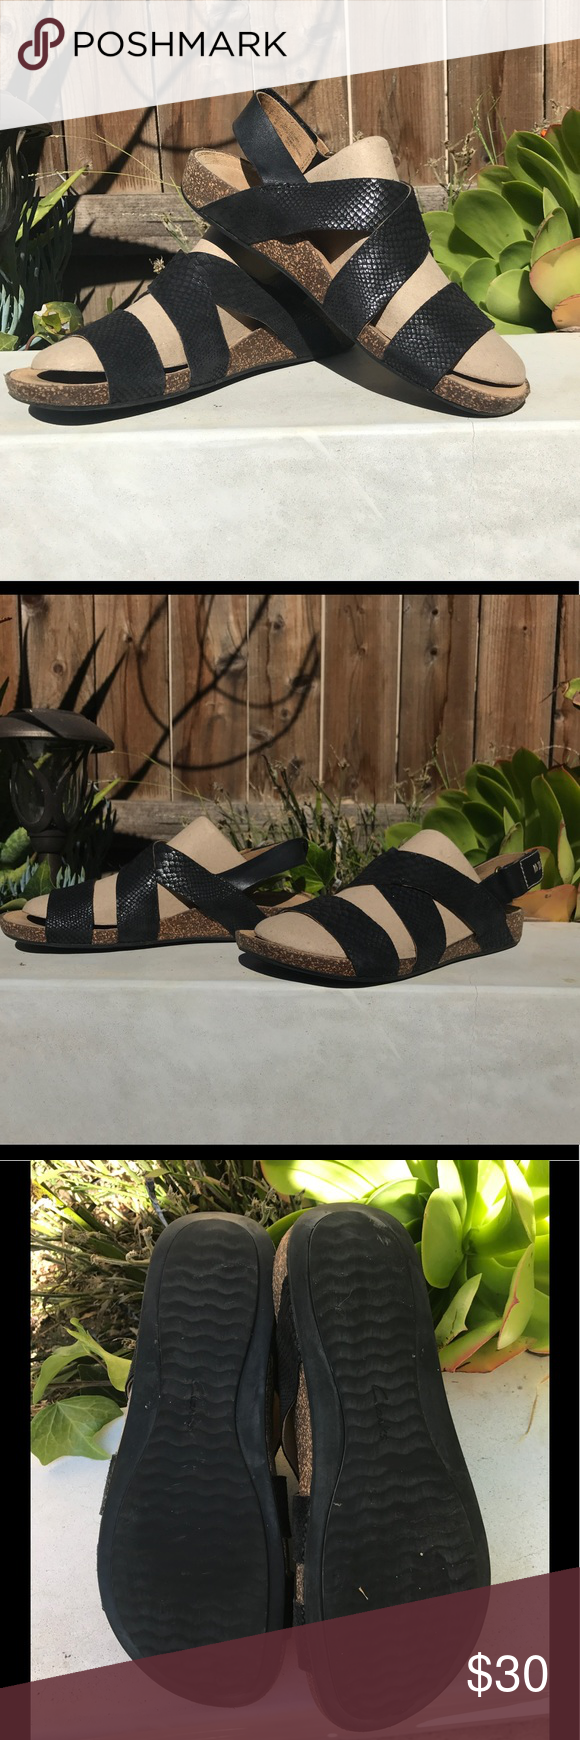 d8b2910a8f90 Clarks Perri Dune Sandals Great strap sandal with Velcro strap around heel.  Embossed snake on man made upper. Very supportive. In great pre owned  condition.